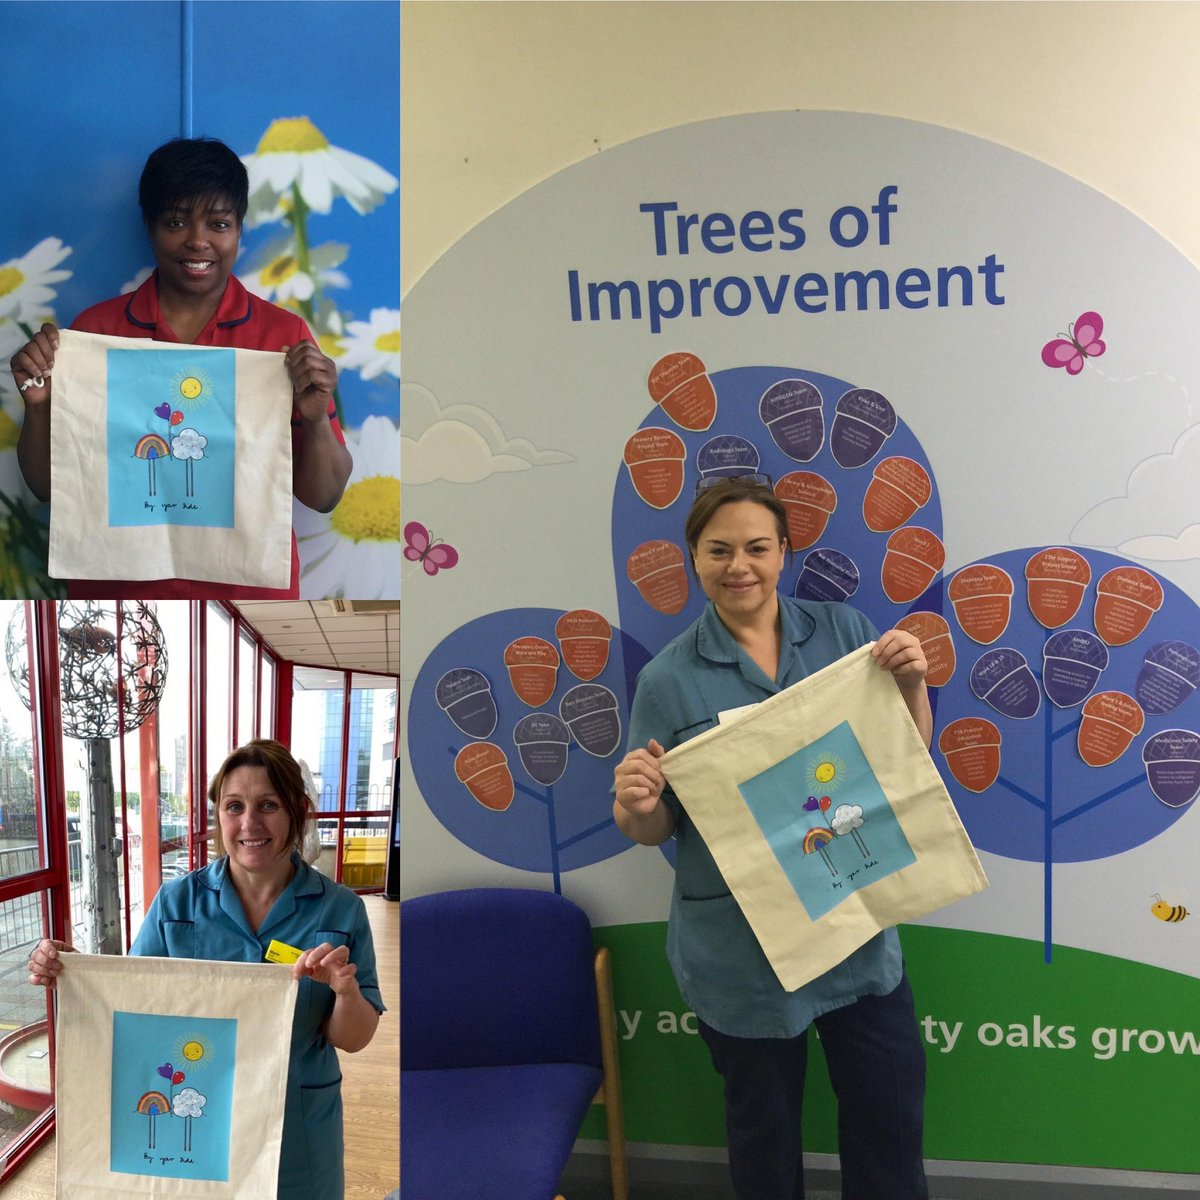 Thankyou @MarnieMakes for the amazing design on the lovely bags. Below are some grateful midwifery colleagues at Birmingham women's hospital @BWC_NHS @MarieFo28506679